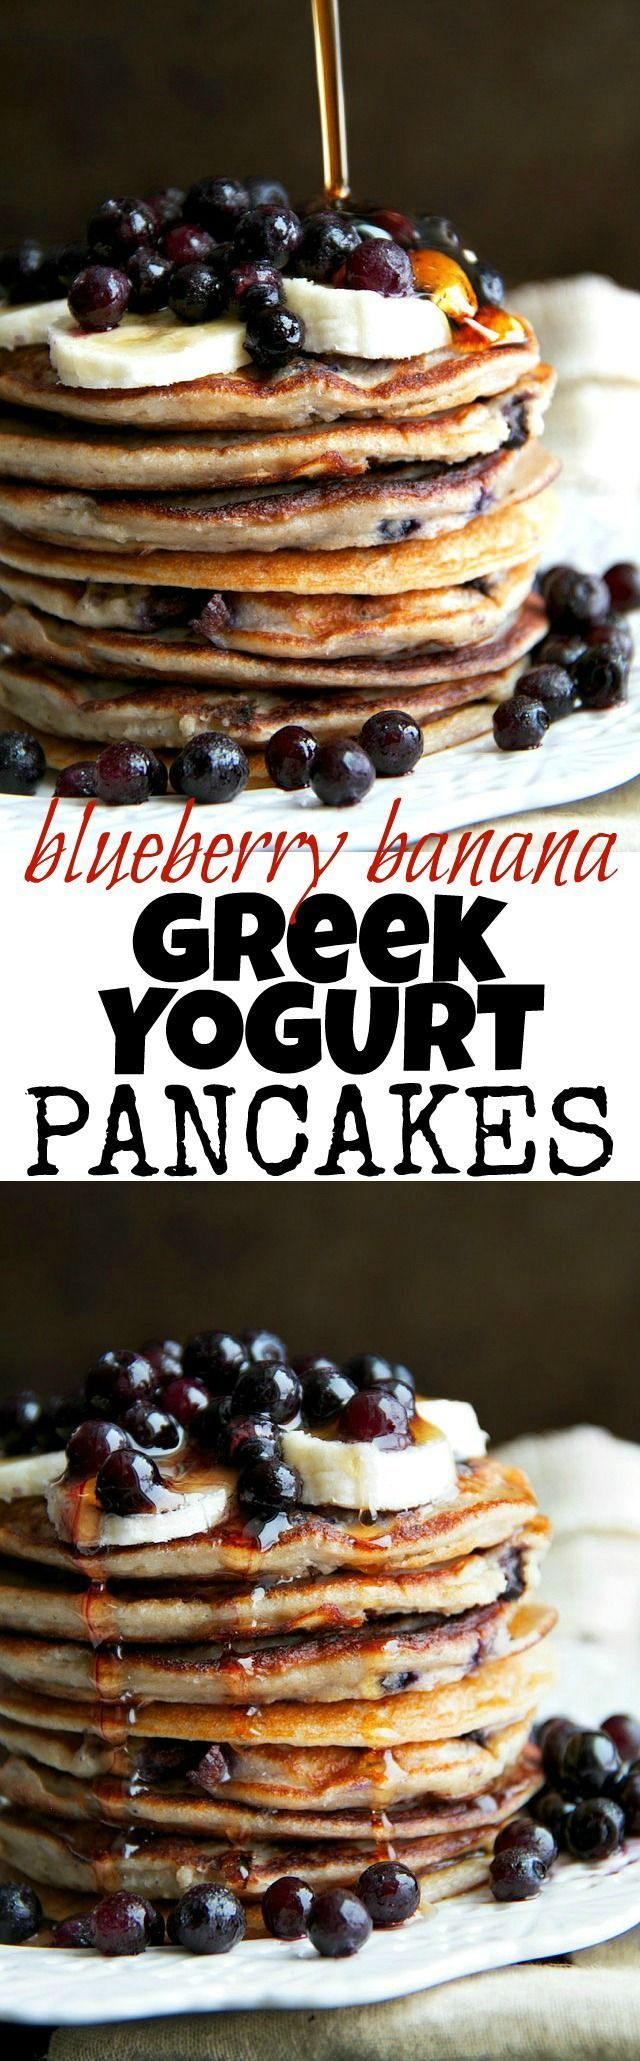 These light and fluffy Blueberry Banana Greek Yogurt Pancakes are sure to keep you satisfied all morning with over 20g of whole food protein! | runningwithspoons... #glutenfree #healthy #breakfast